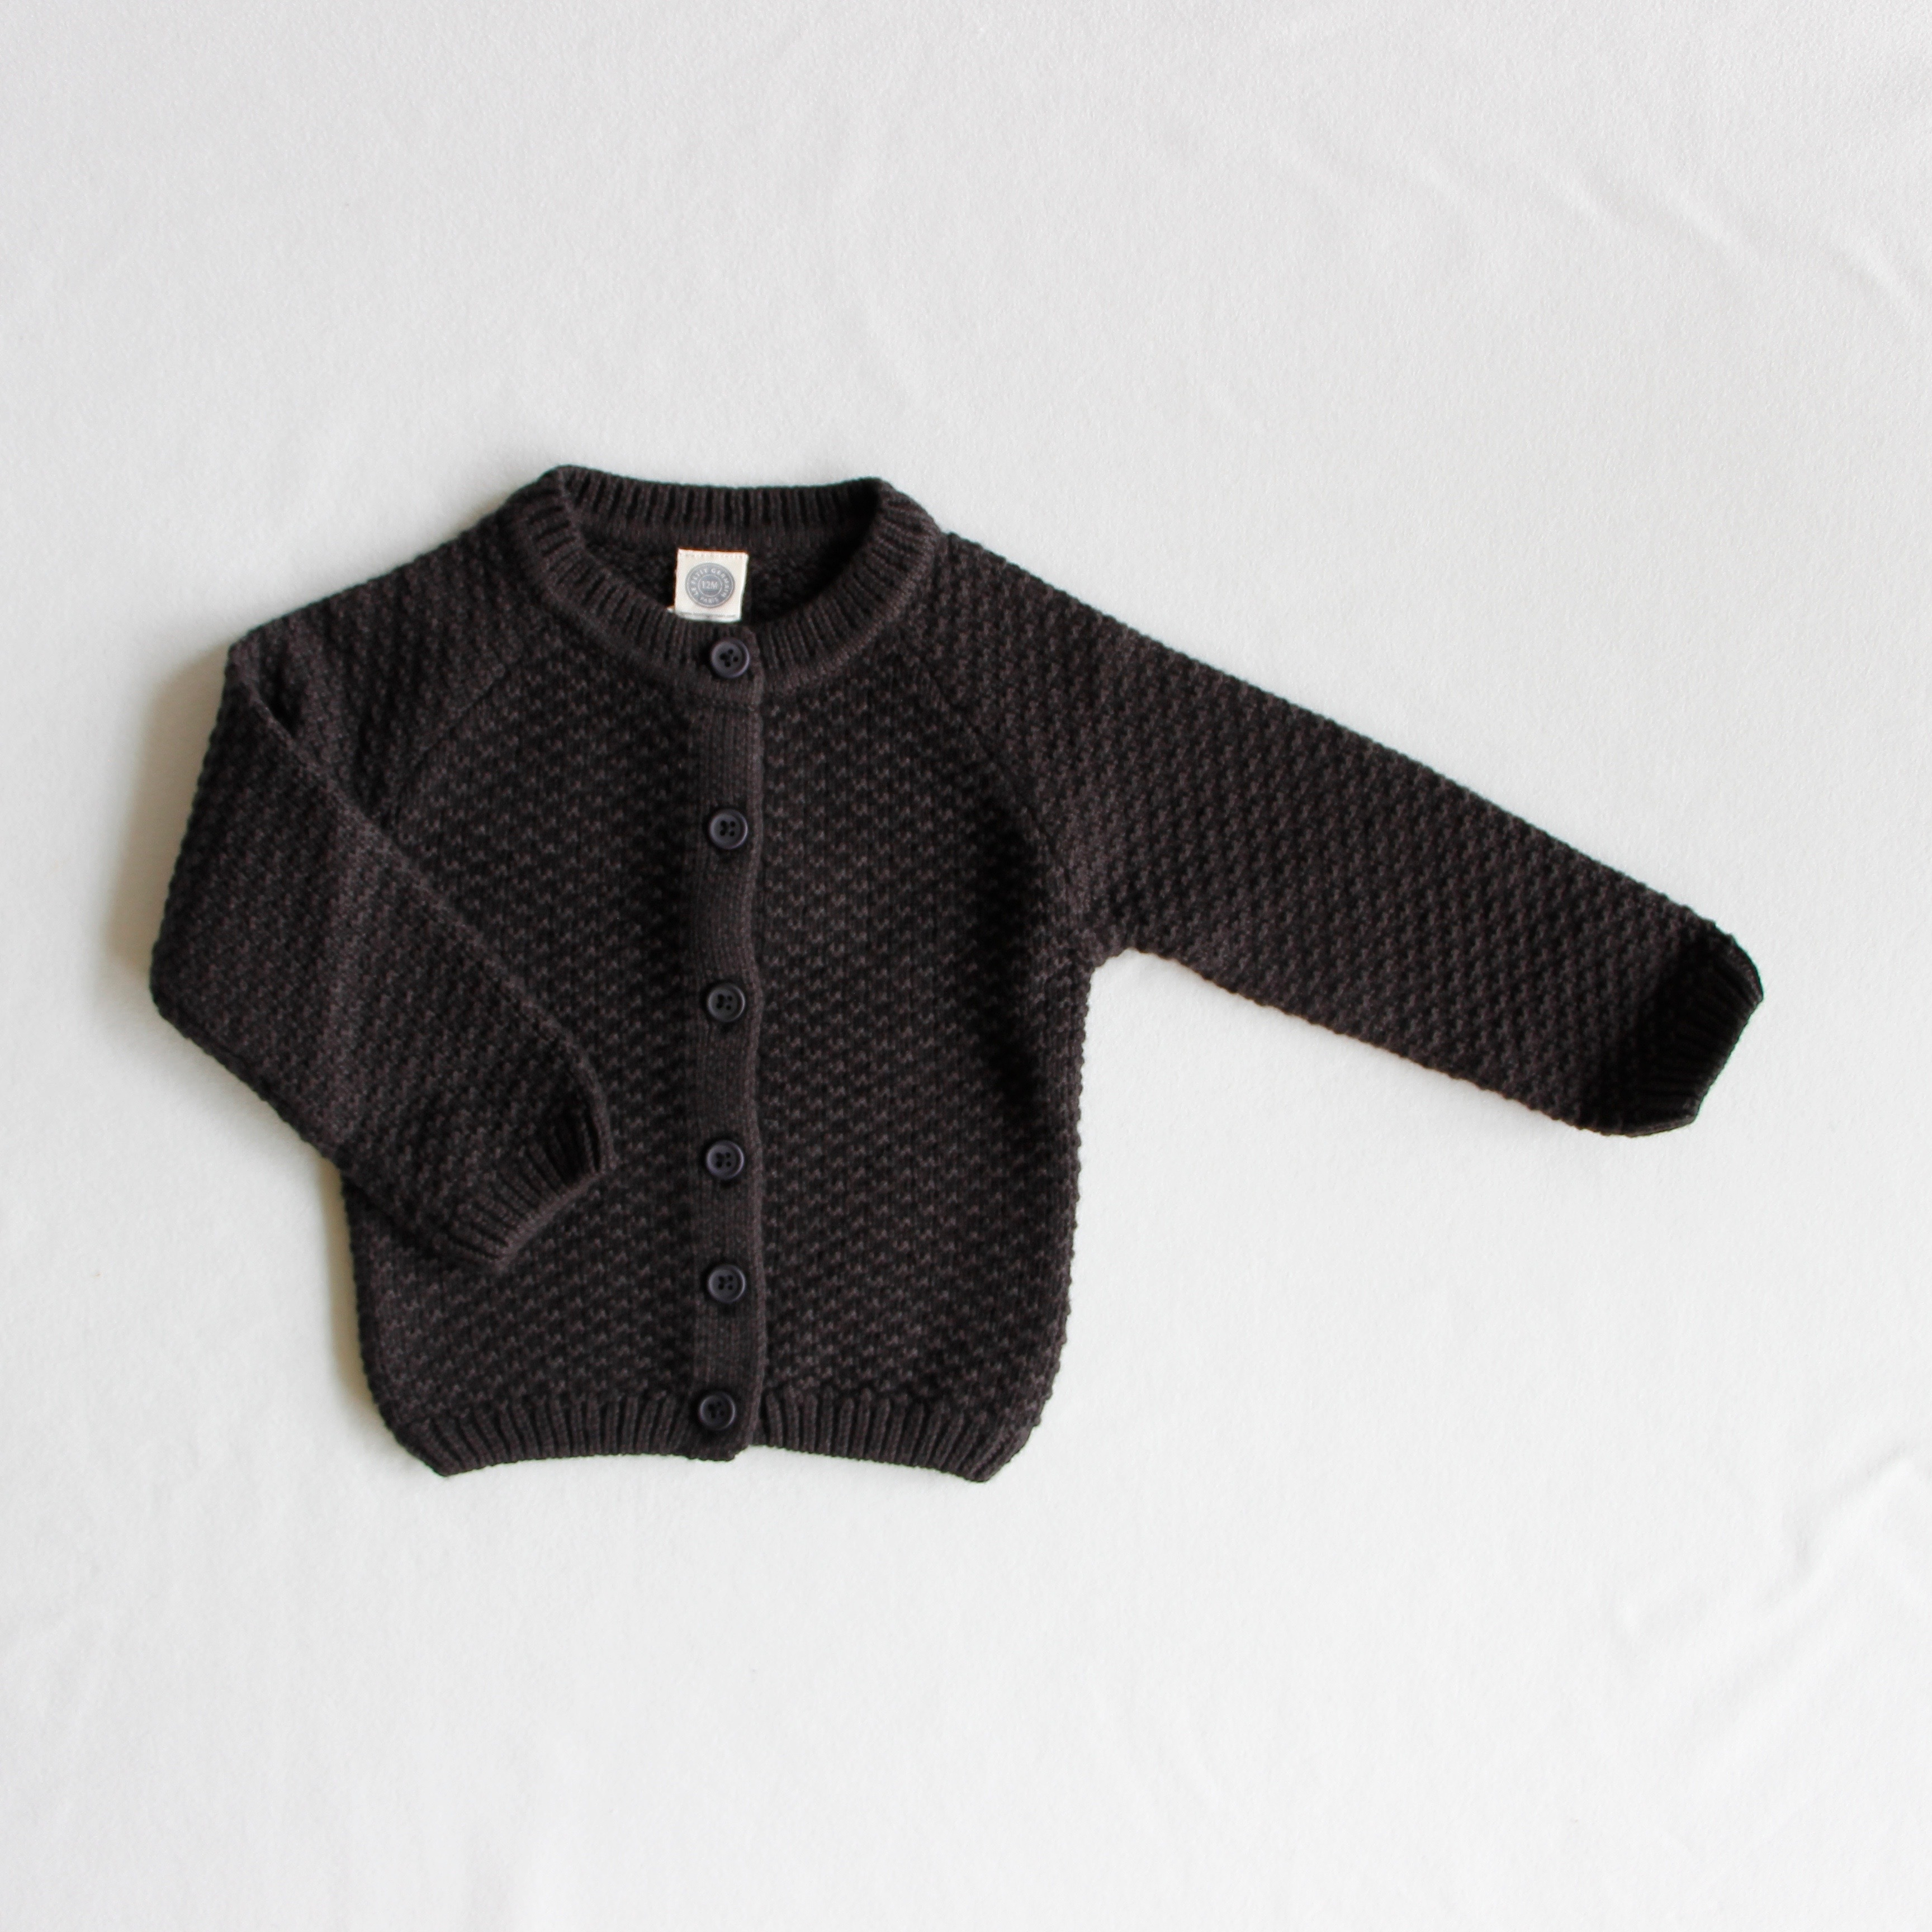 《LE PETIT GERMAIN 2019AW》Armel cardigan / black